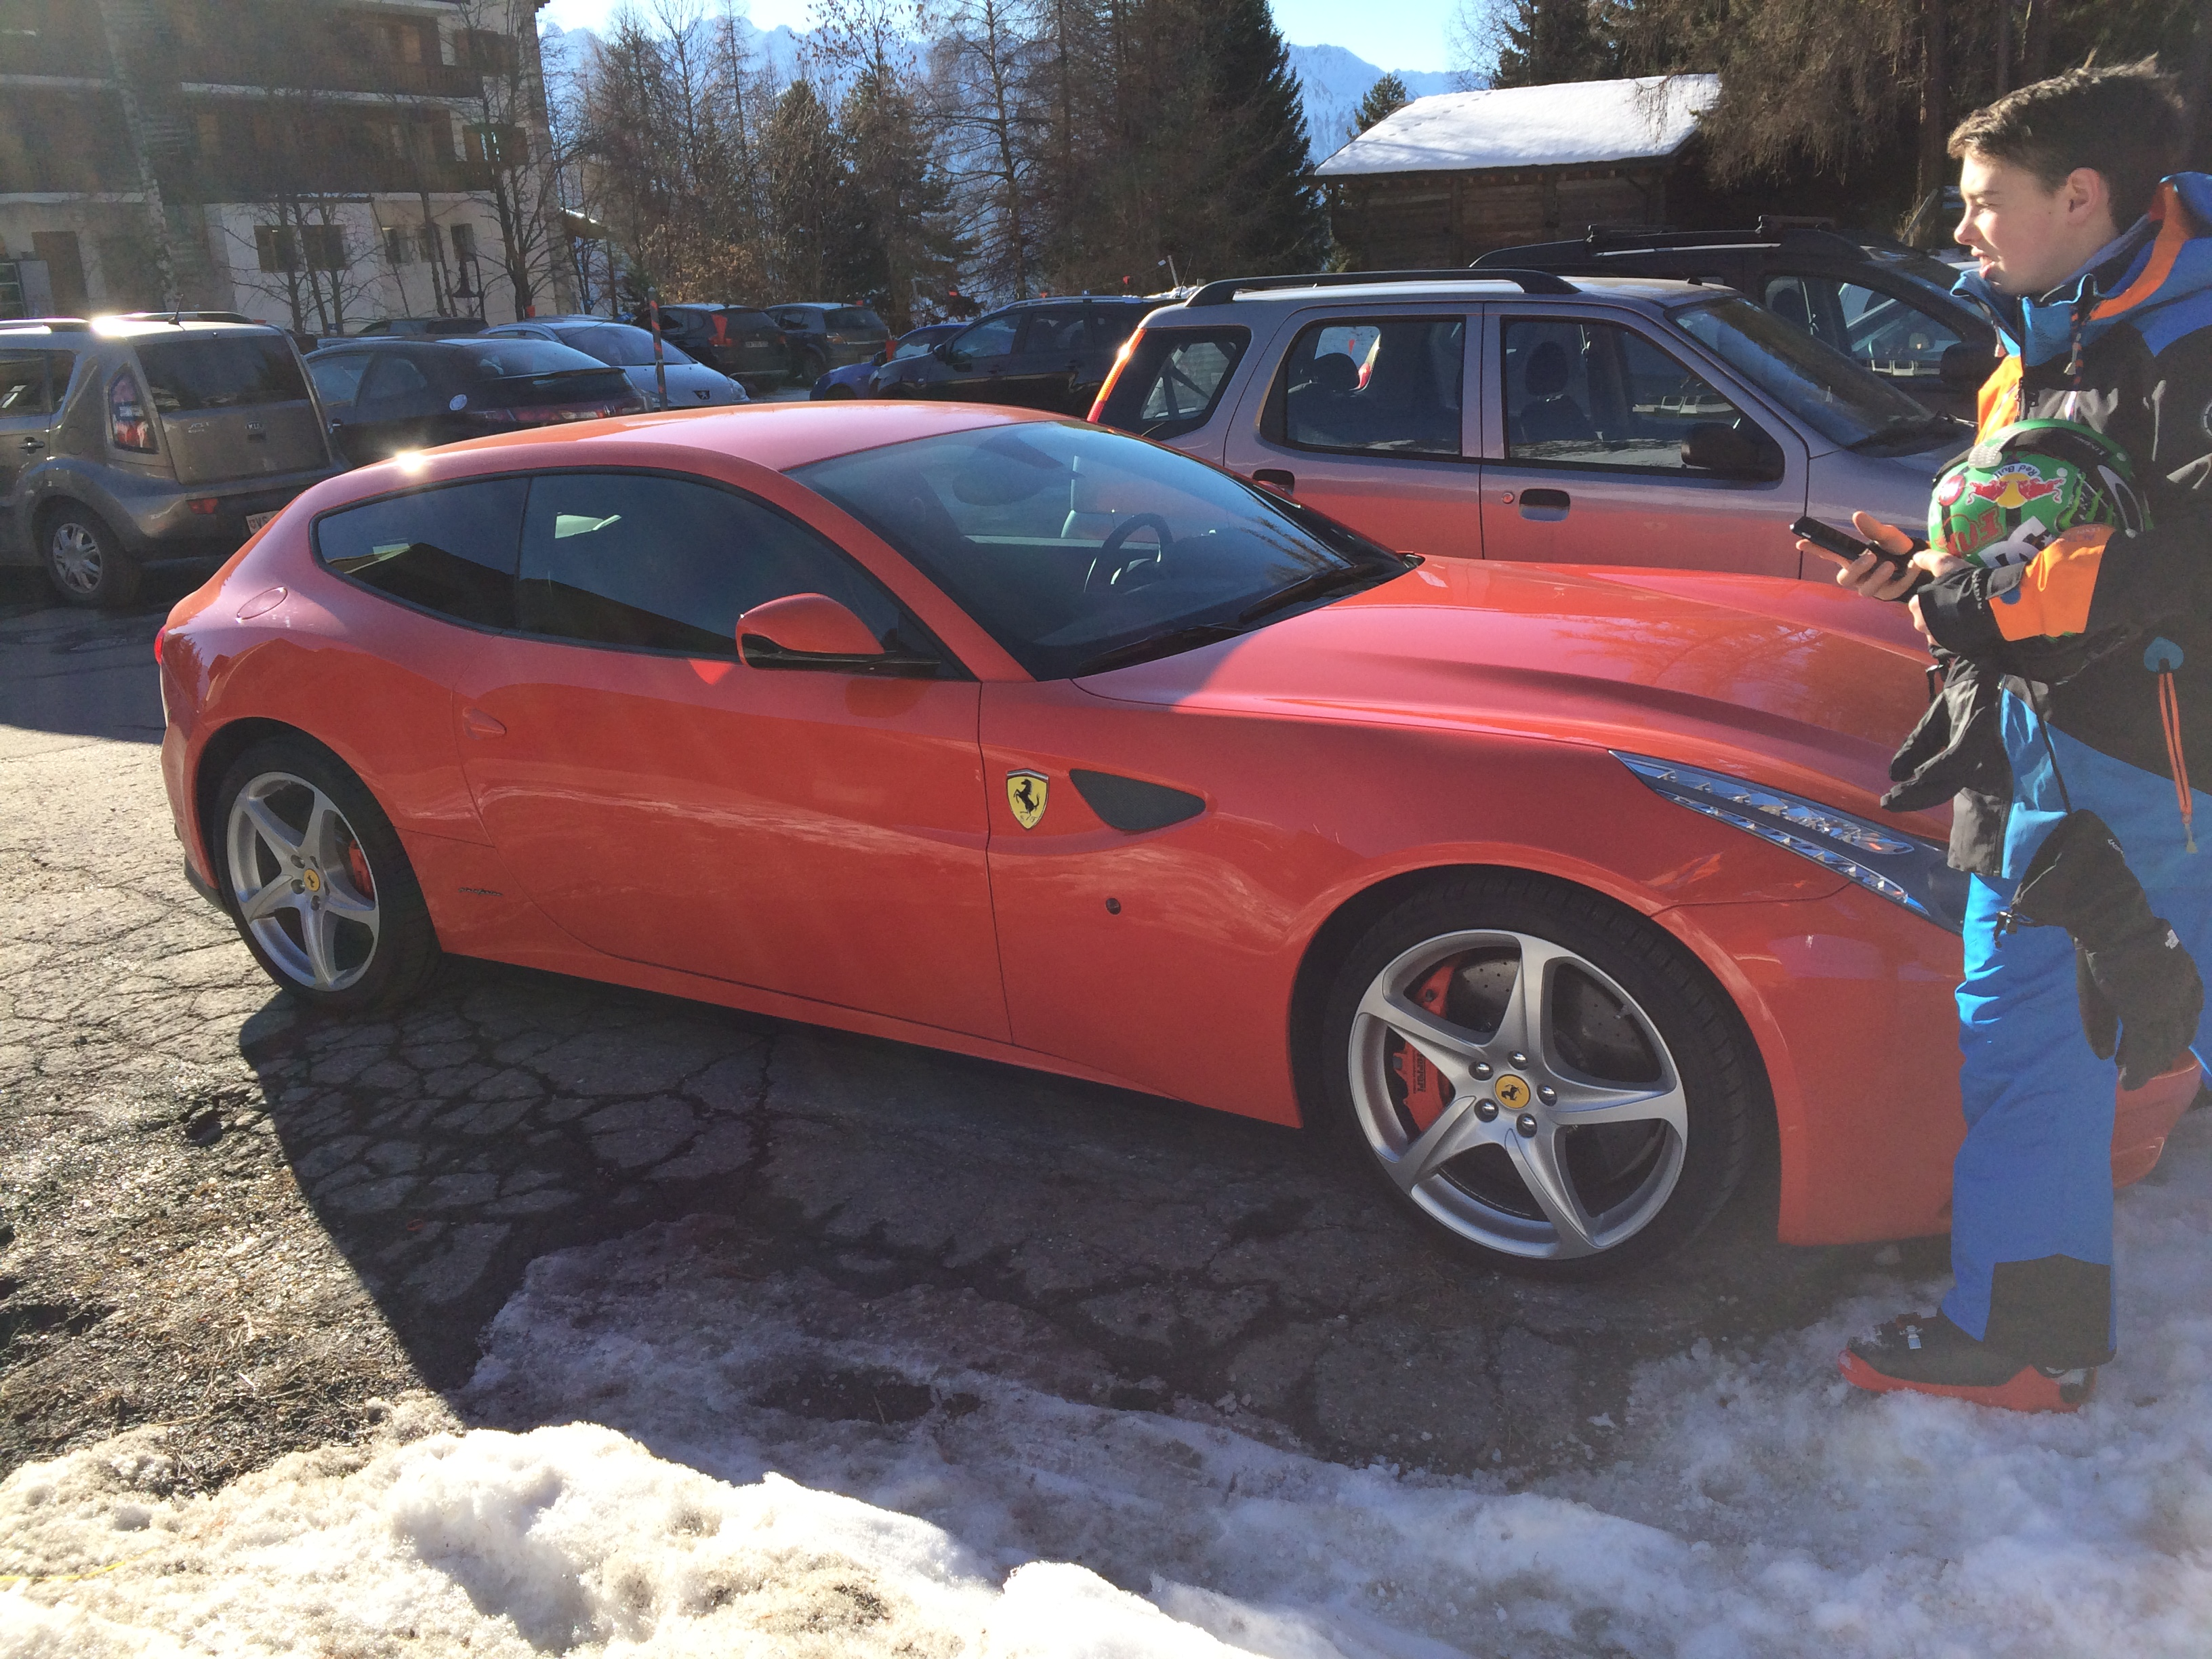 I Found A Ferrari Ff In Switzerland Eating Up The Snow Like It Should Be Nice Speak With A Light Red Exterior And A Black Interior